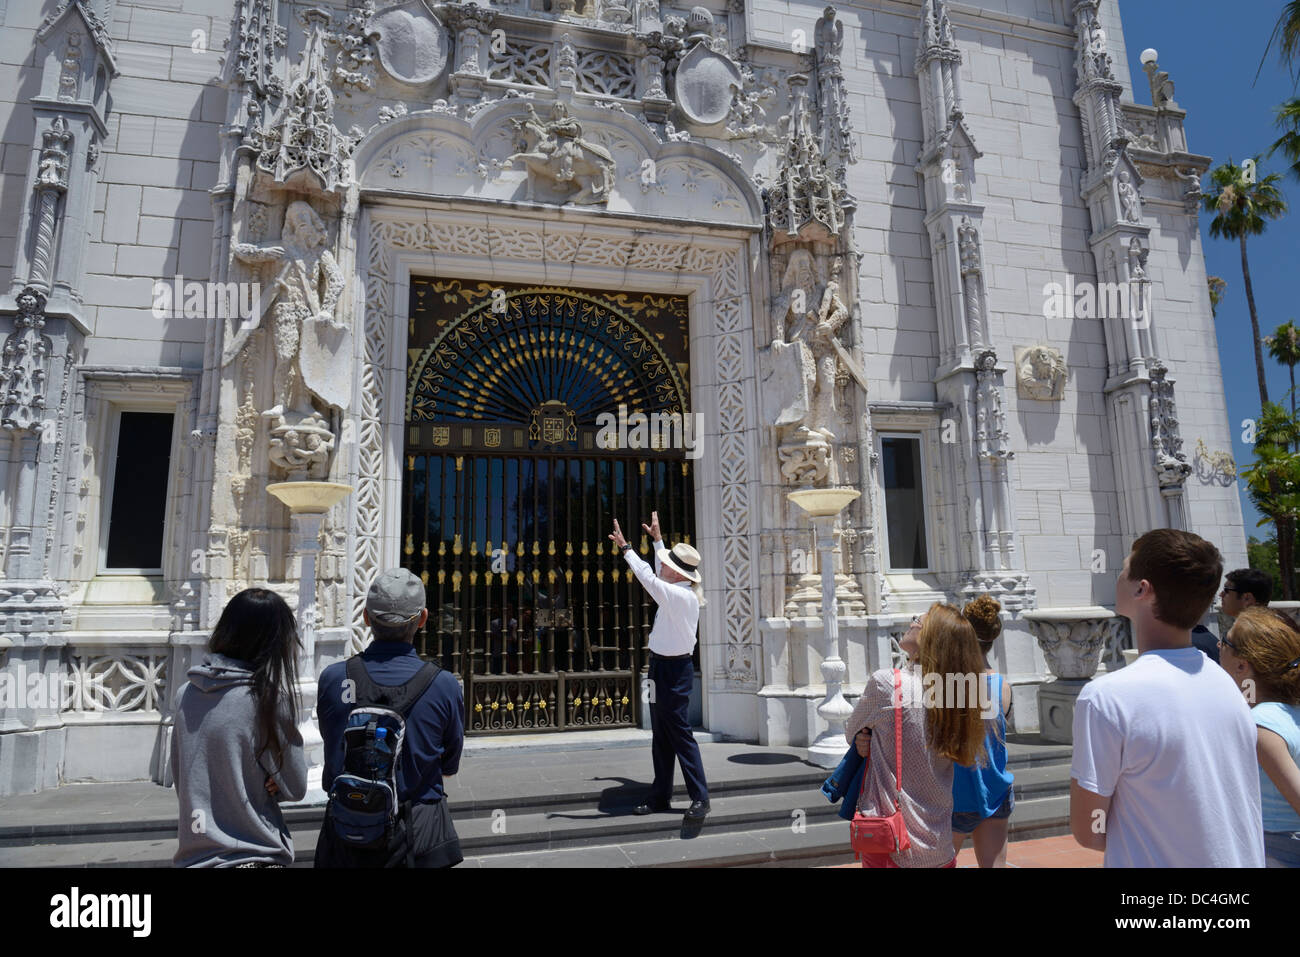 Hearst Castle front entrance with tour guide and group, San Simeon, CA - Stock Image